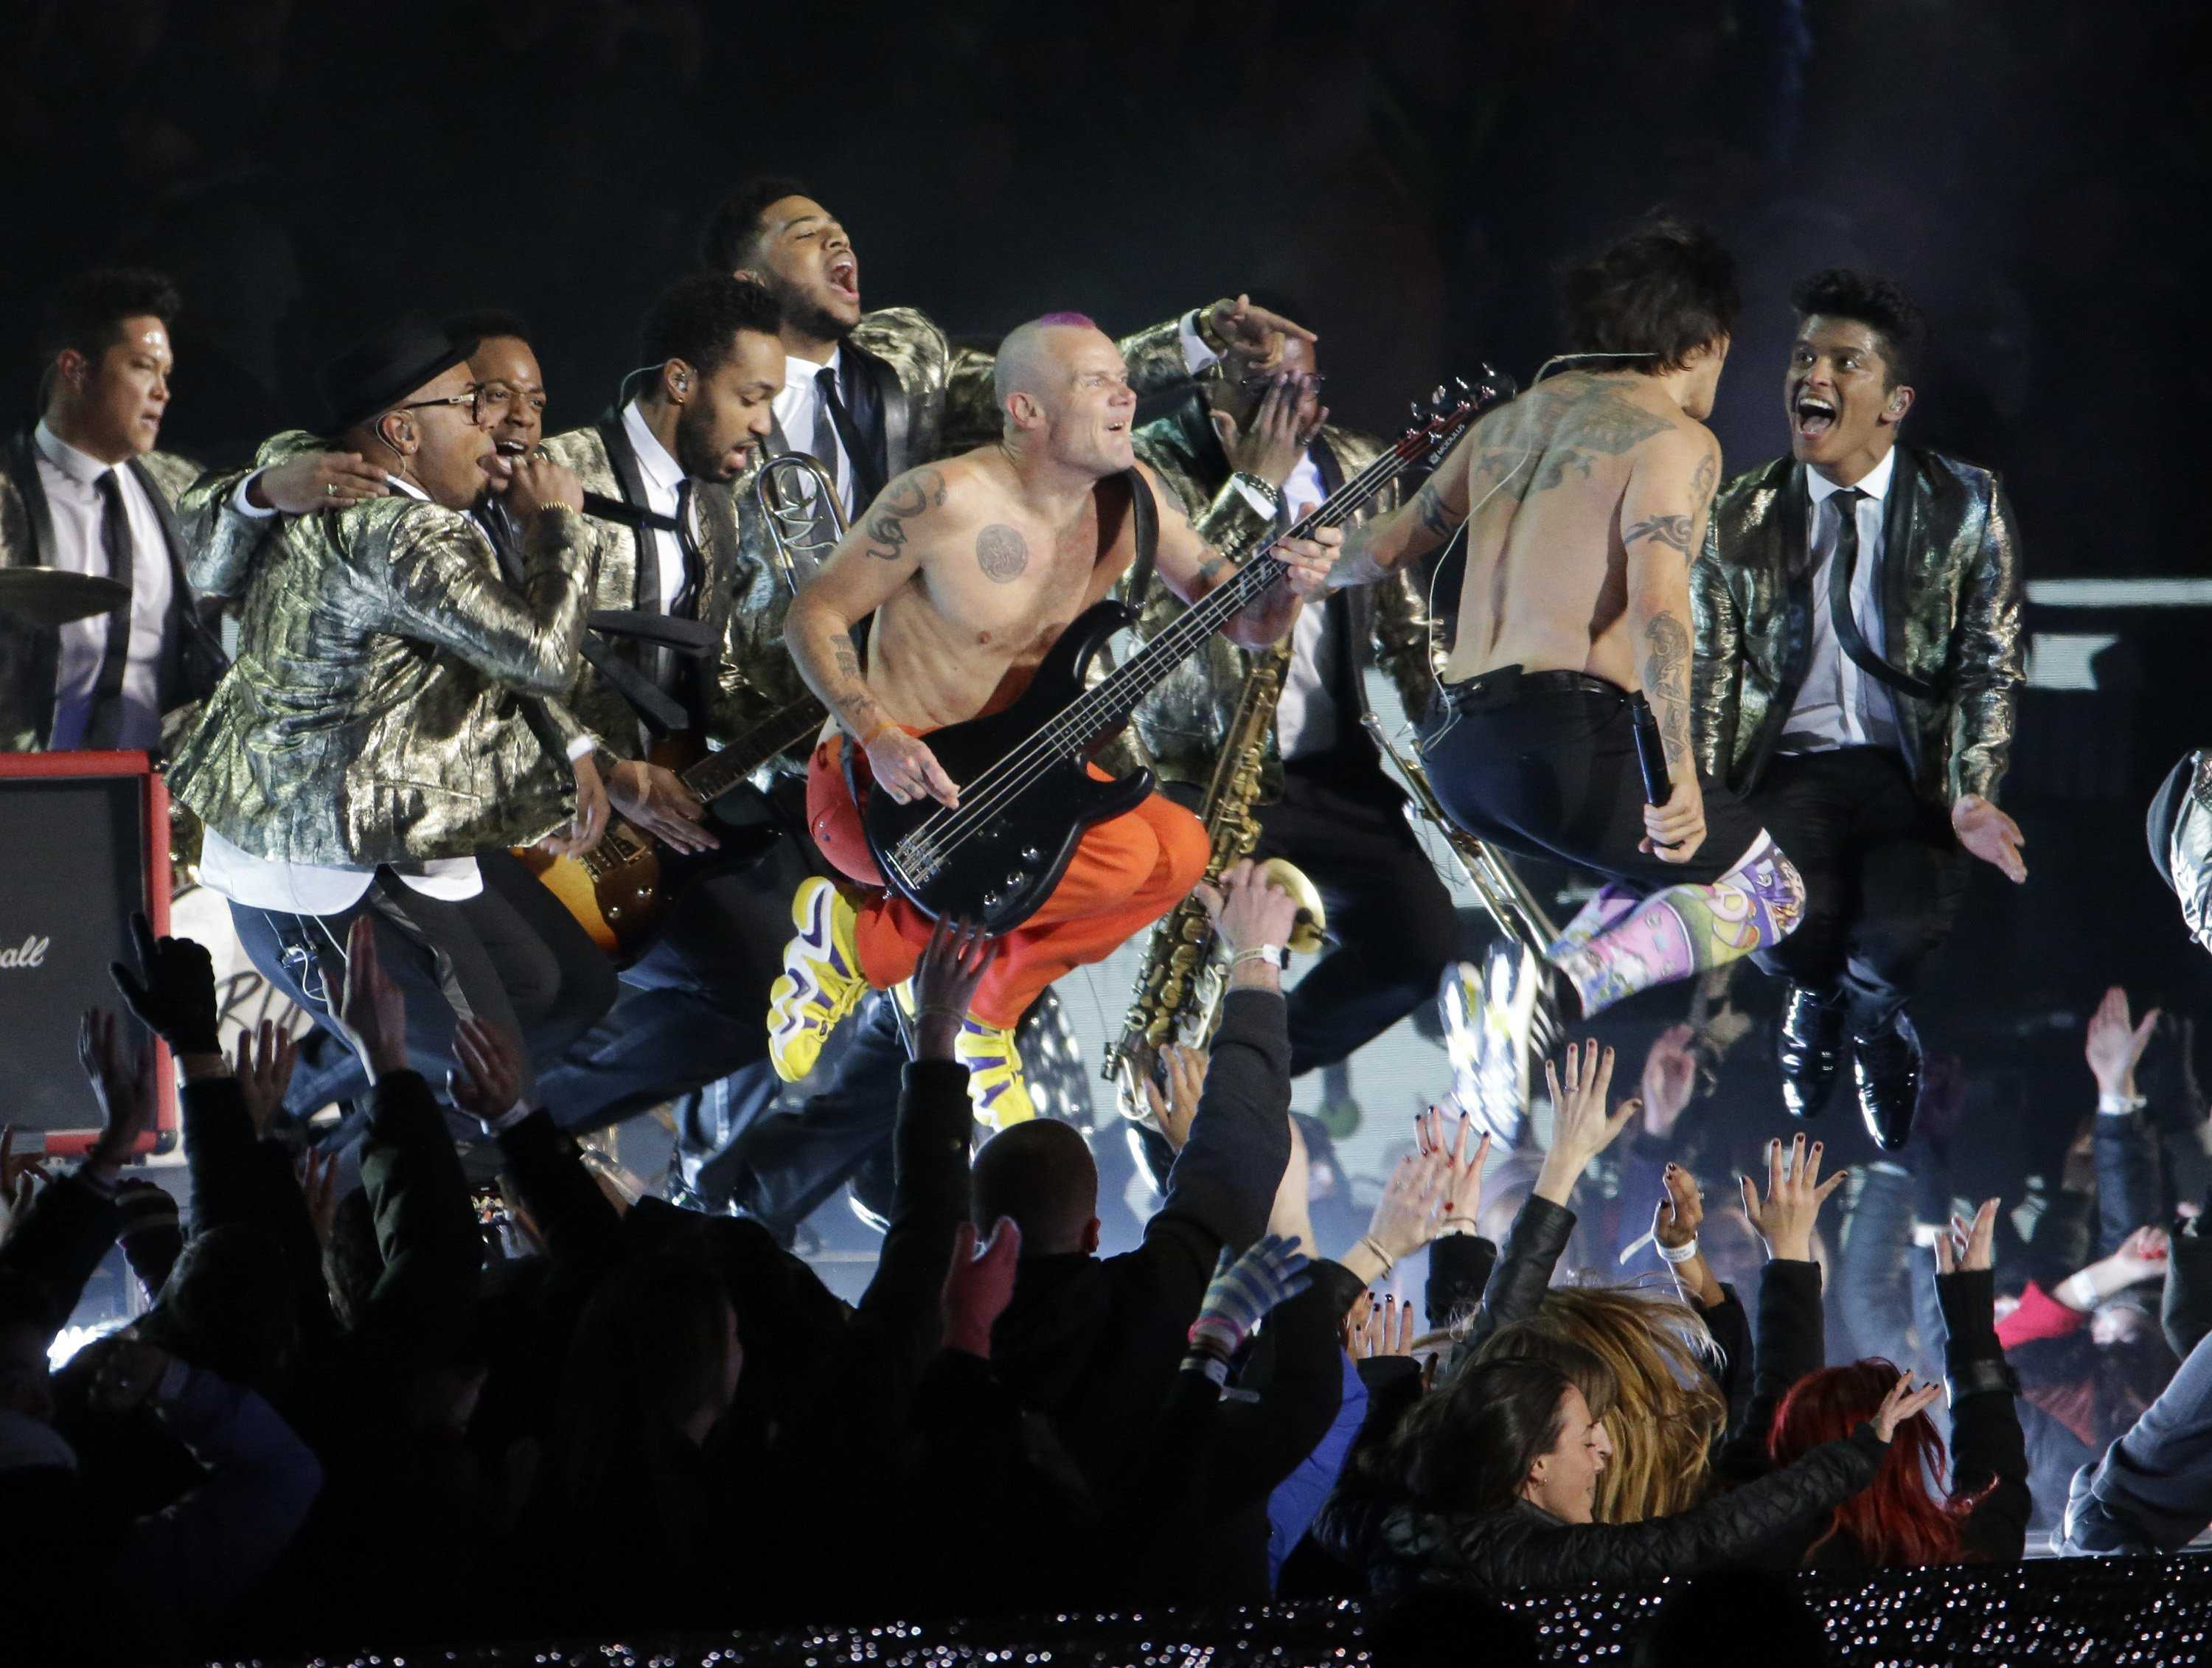 The Red Hot Chili Peppers join Bruno Mars as they perform at halftime during Super Bowl XLVIII at MetLife Stadium in East Rutherford, N.J., on Sunday, Feb. 2, 2014. (J. Patric Schneider/MCT)